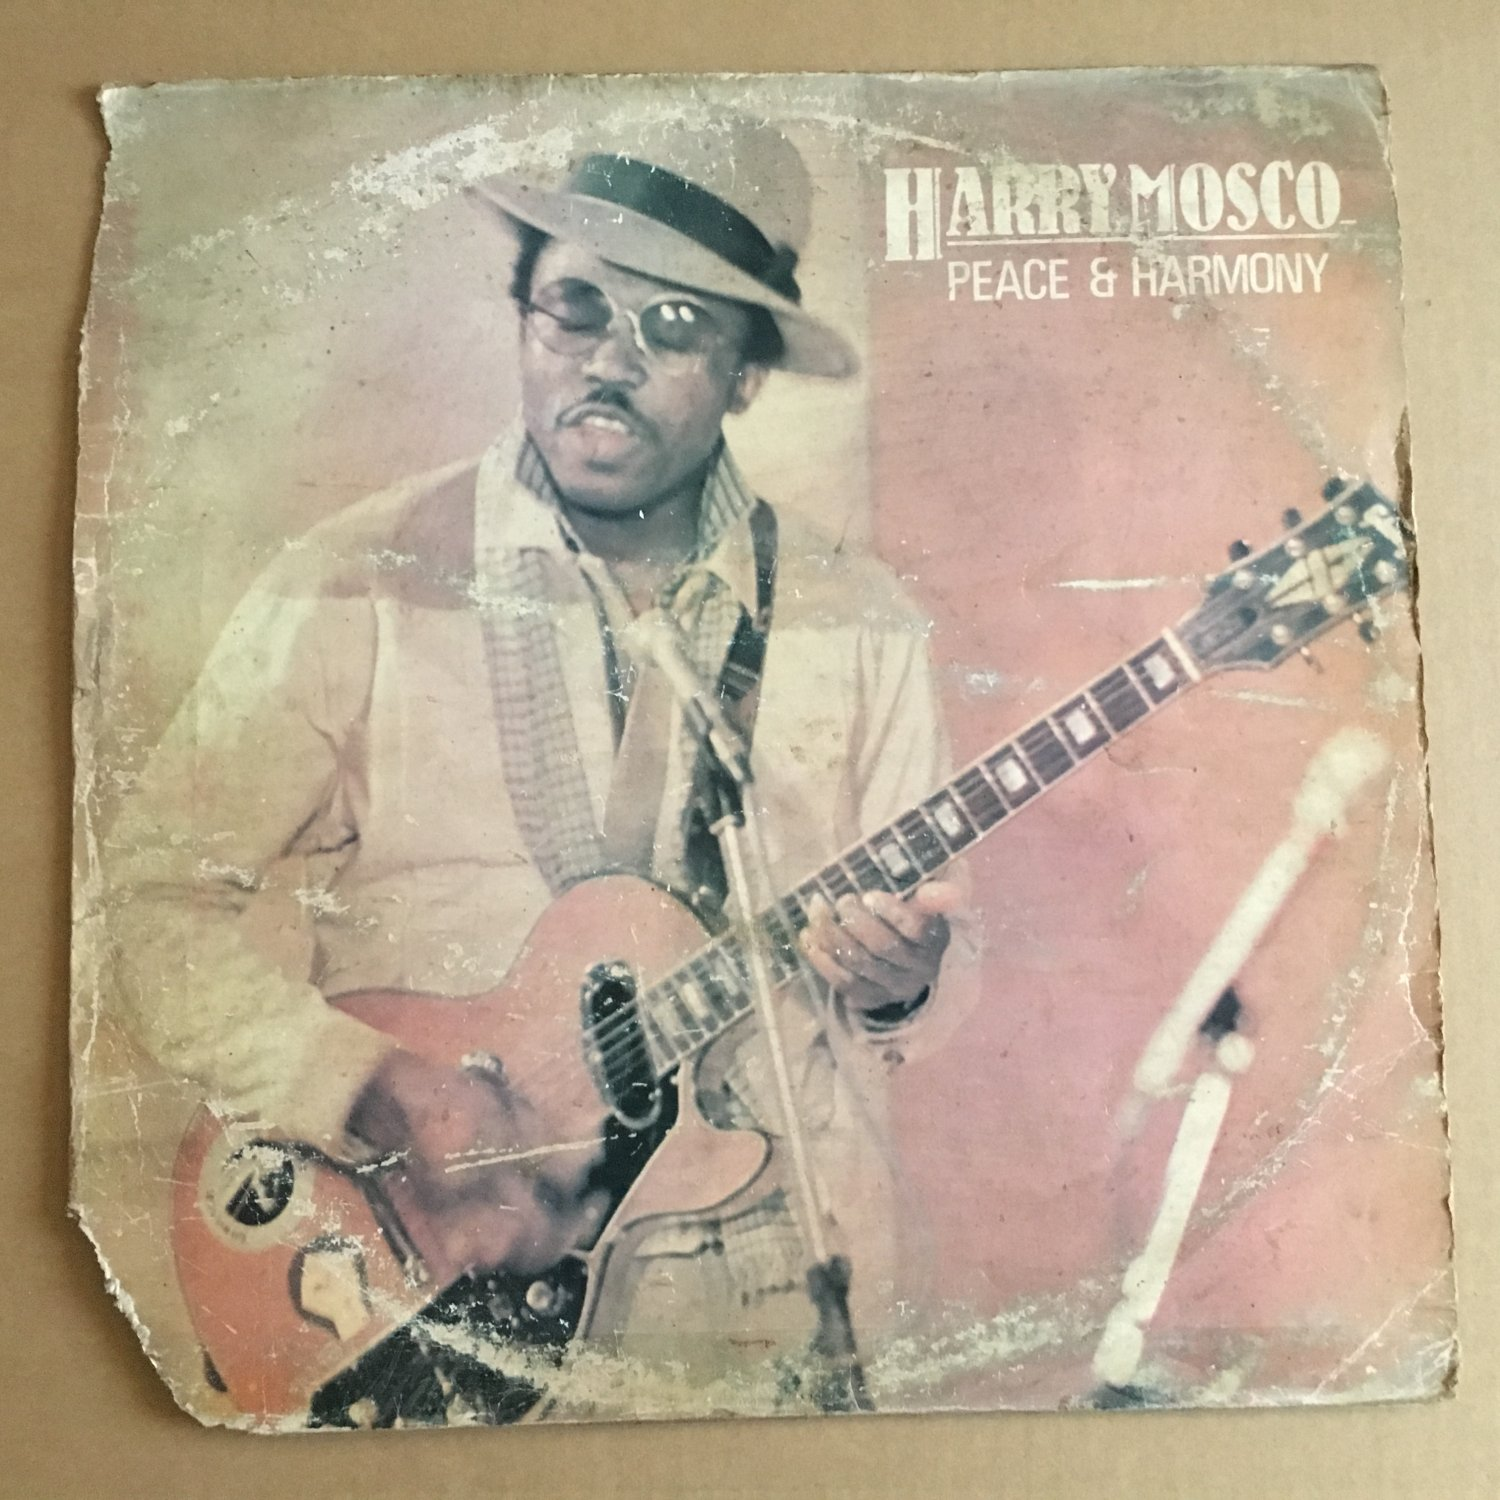 HARRY MOSCO LP peace & harmony AFRO FUNK DISCO REGGAE NIGERIA FUNKEES mp3 LISTEN